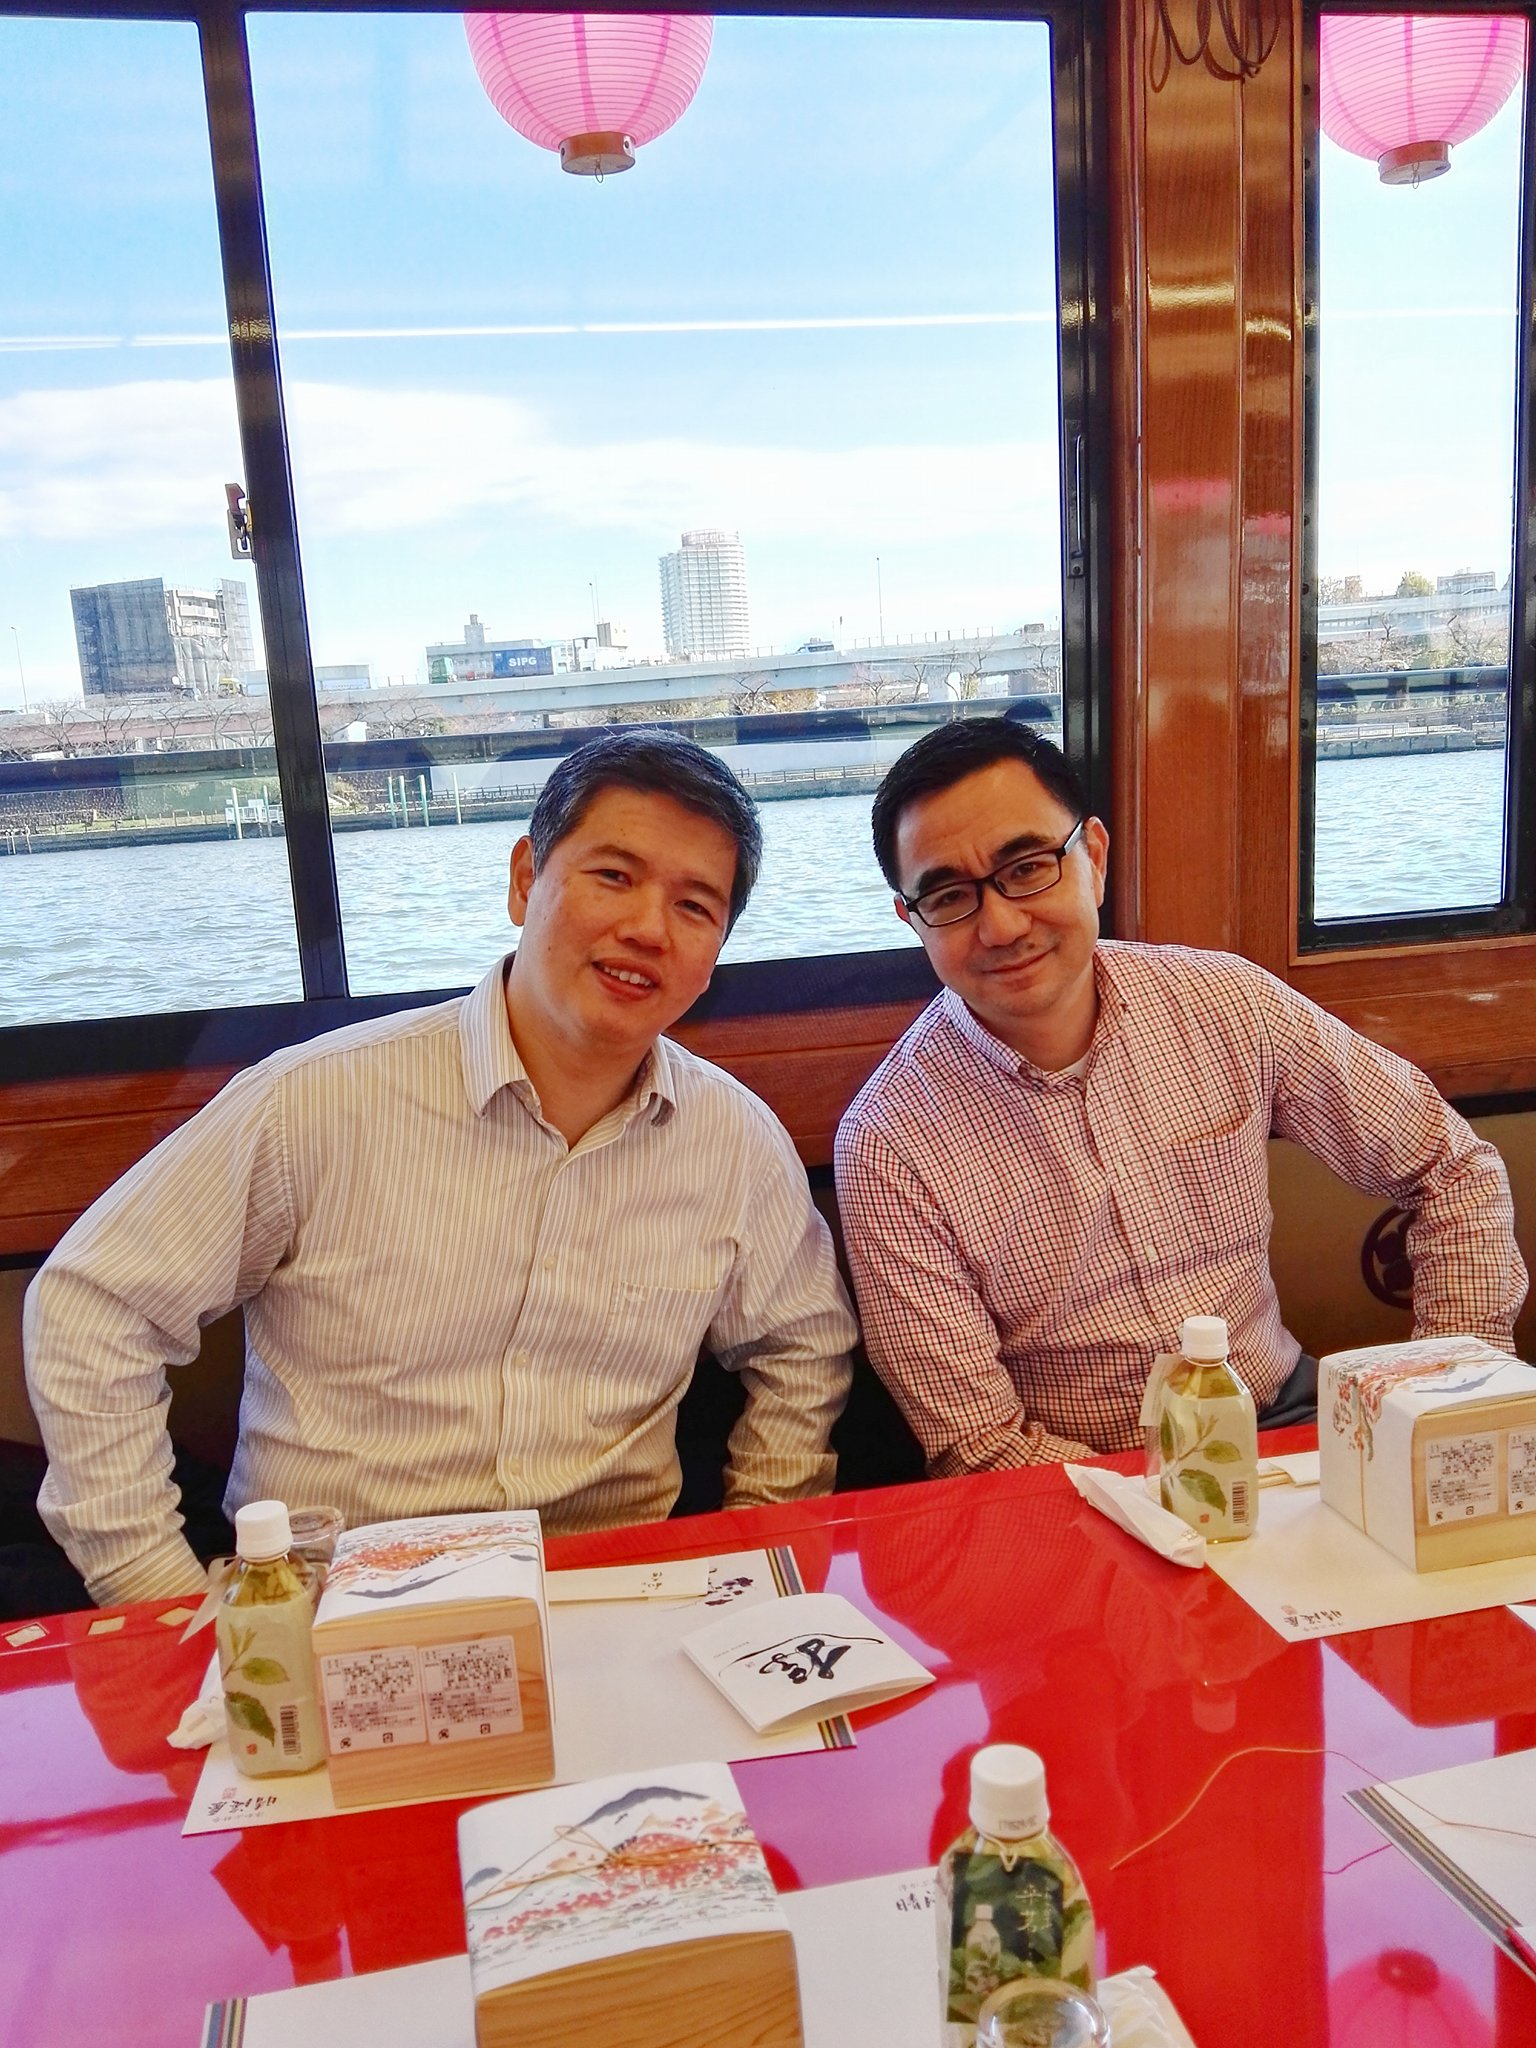 Patrick Pesengco and Herwin See distribute Nespresso in the Philippines through their Philippine Foodservice Group Corporation